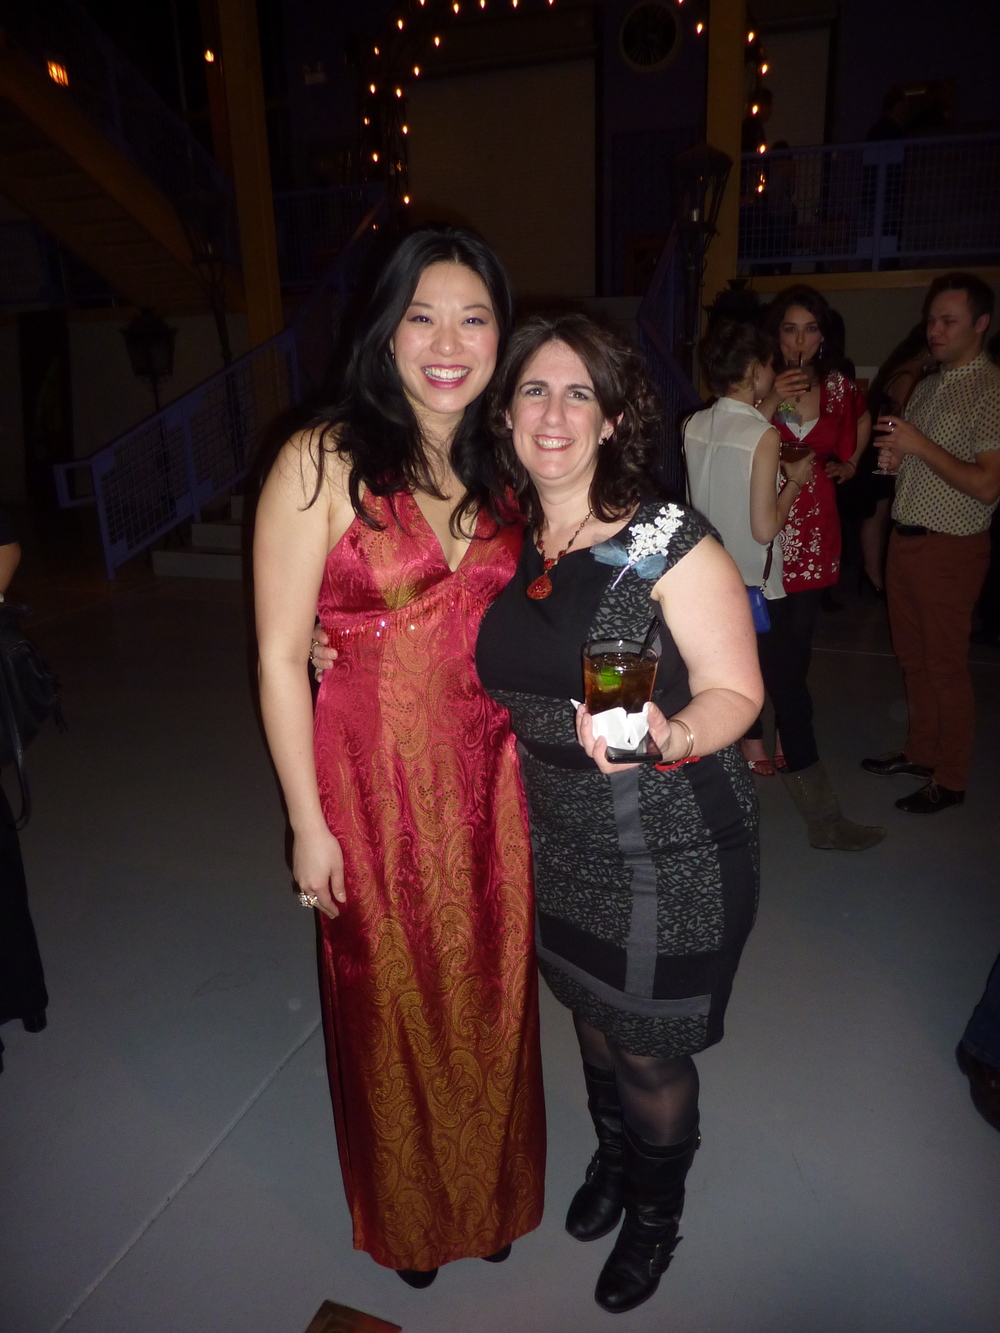 Halcyon co-founder Jenn Adams and me